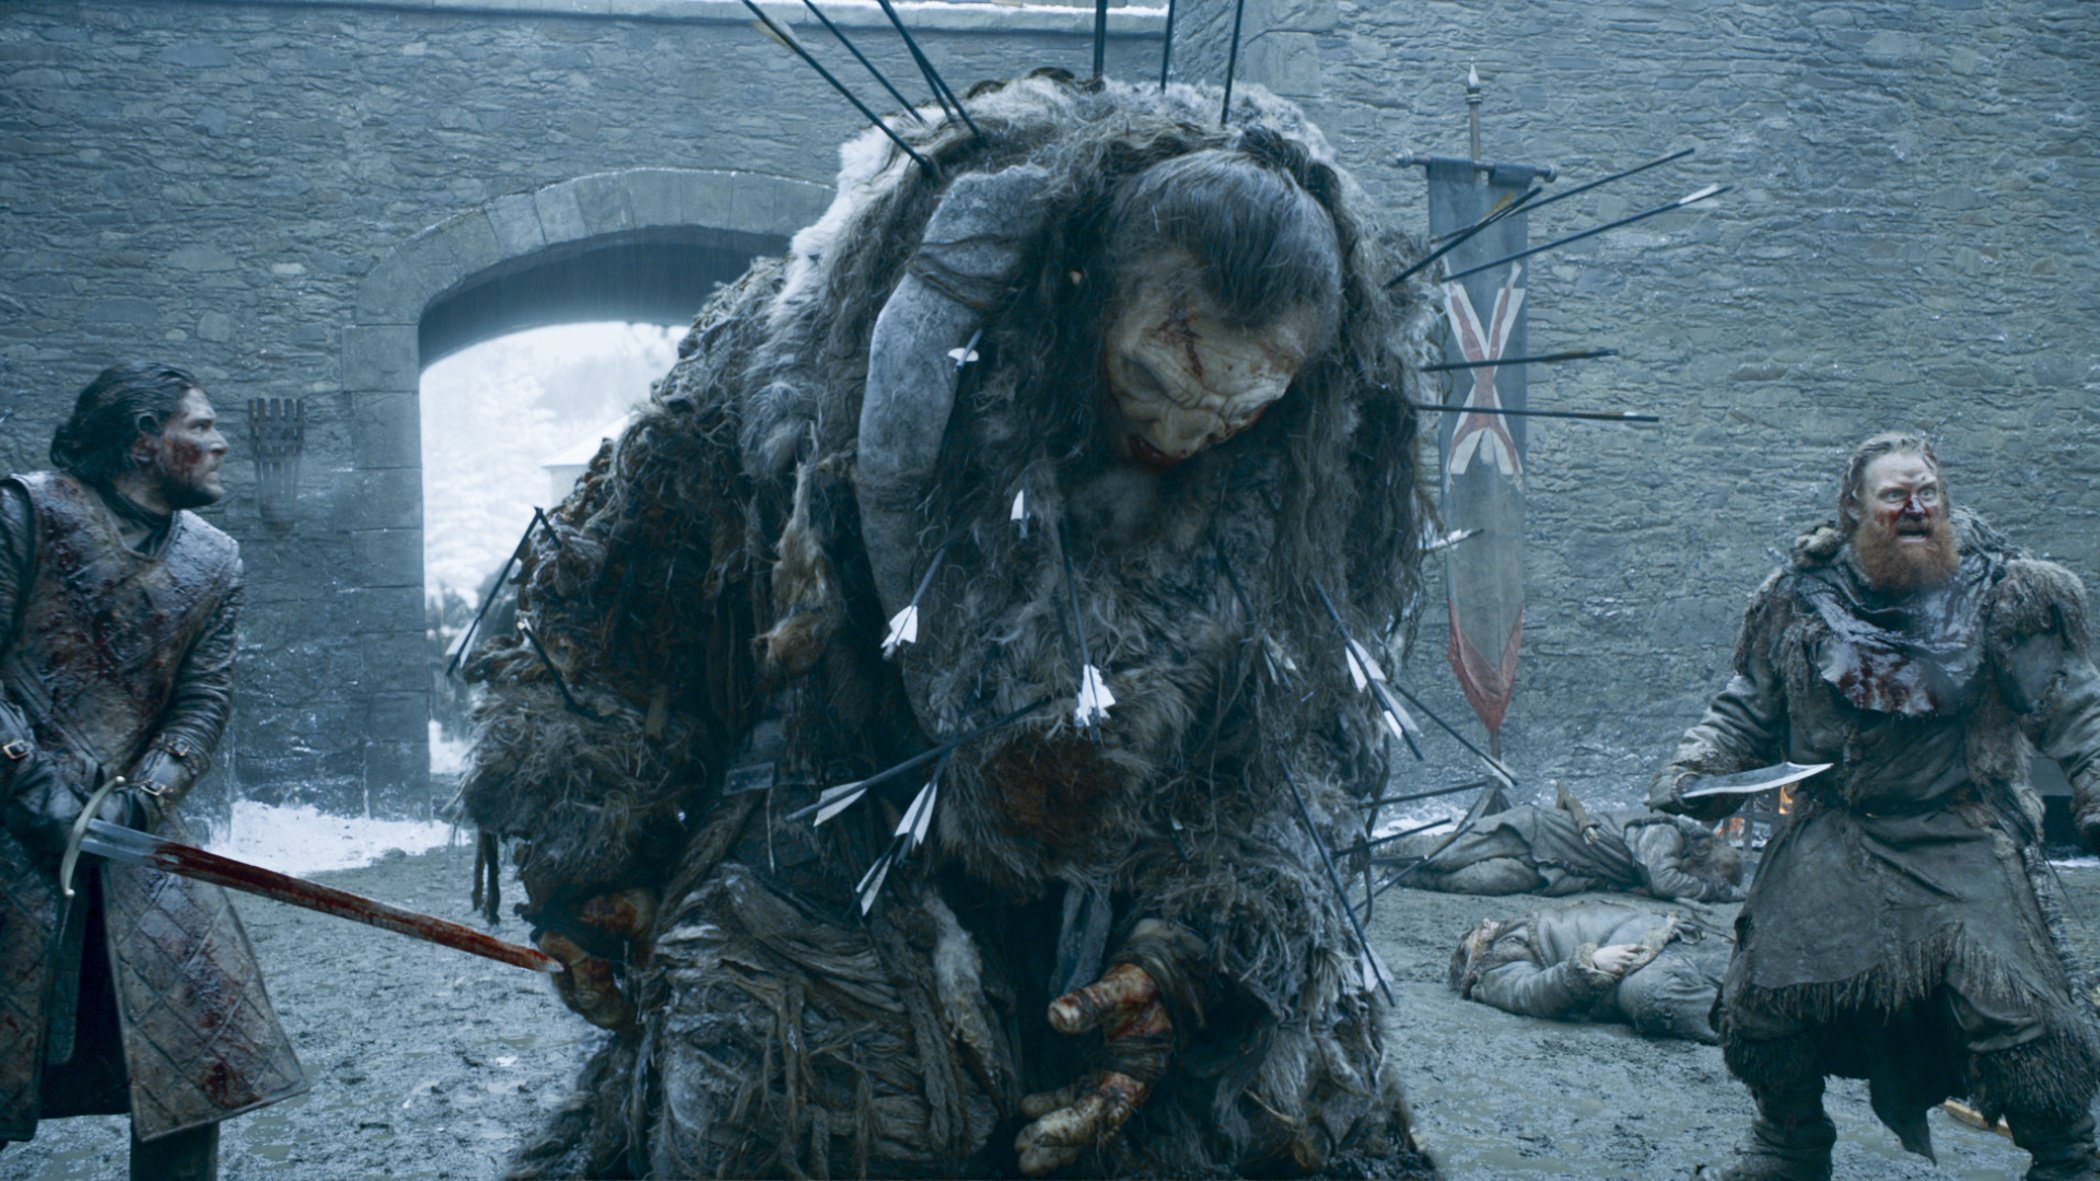 Wun Wun the giant in The Battle Of The Bastards on HBO's Game Of Thrones